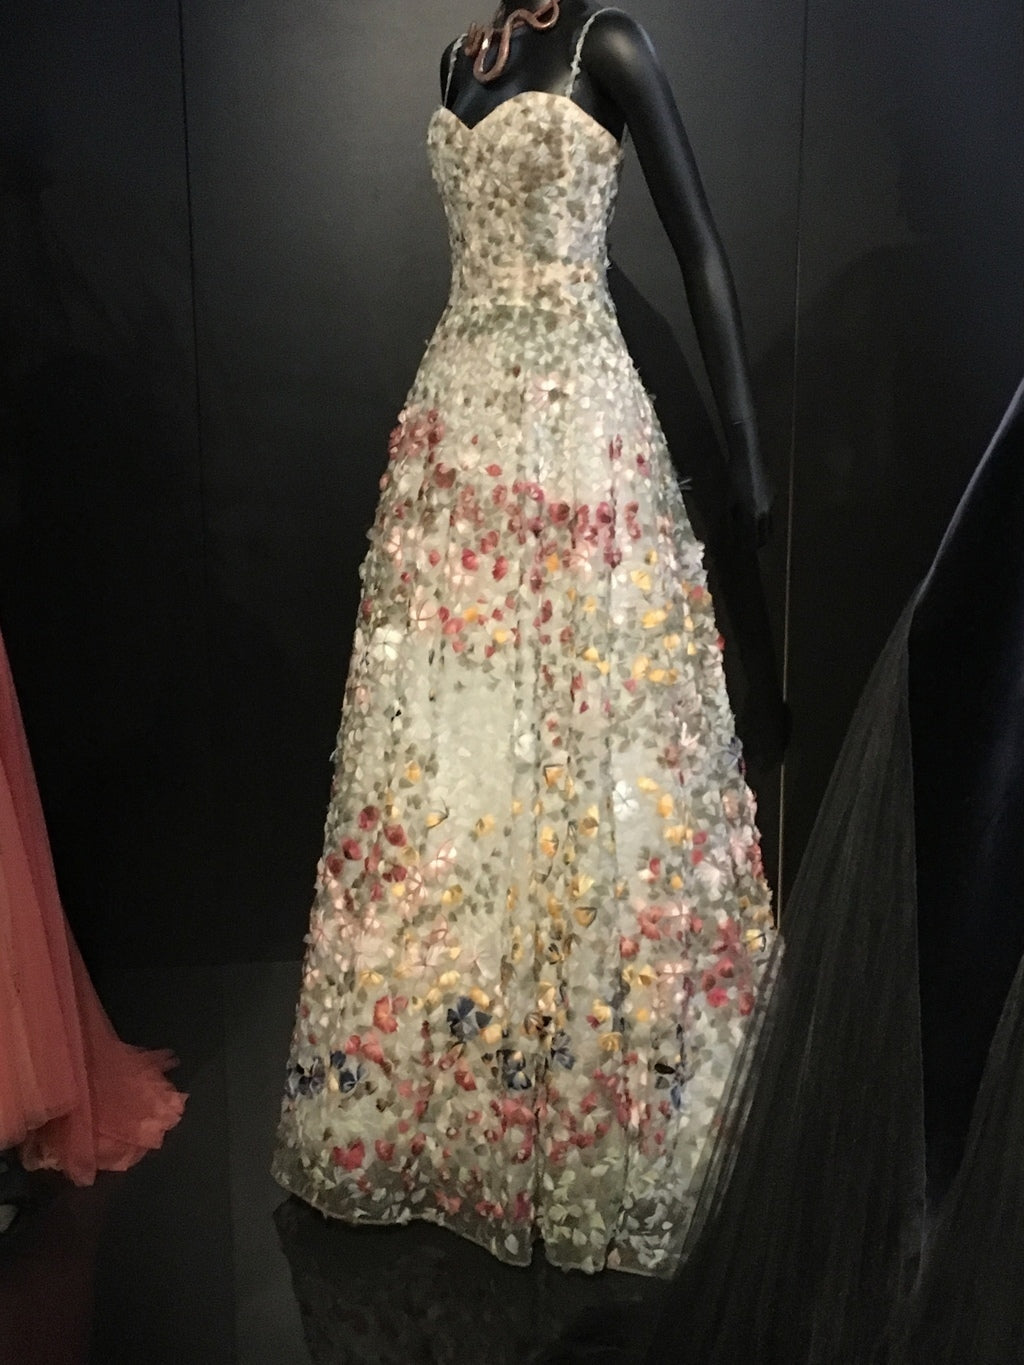 Christian Dior original gowns